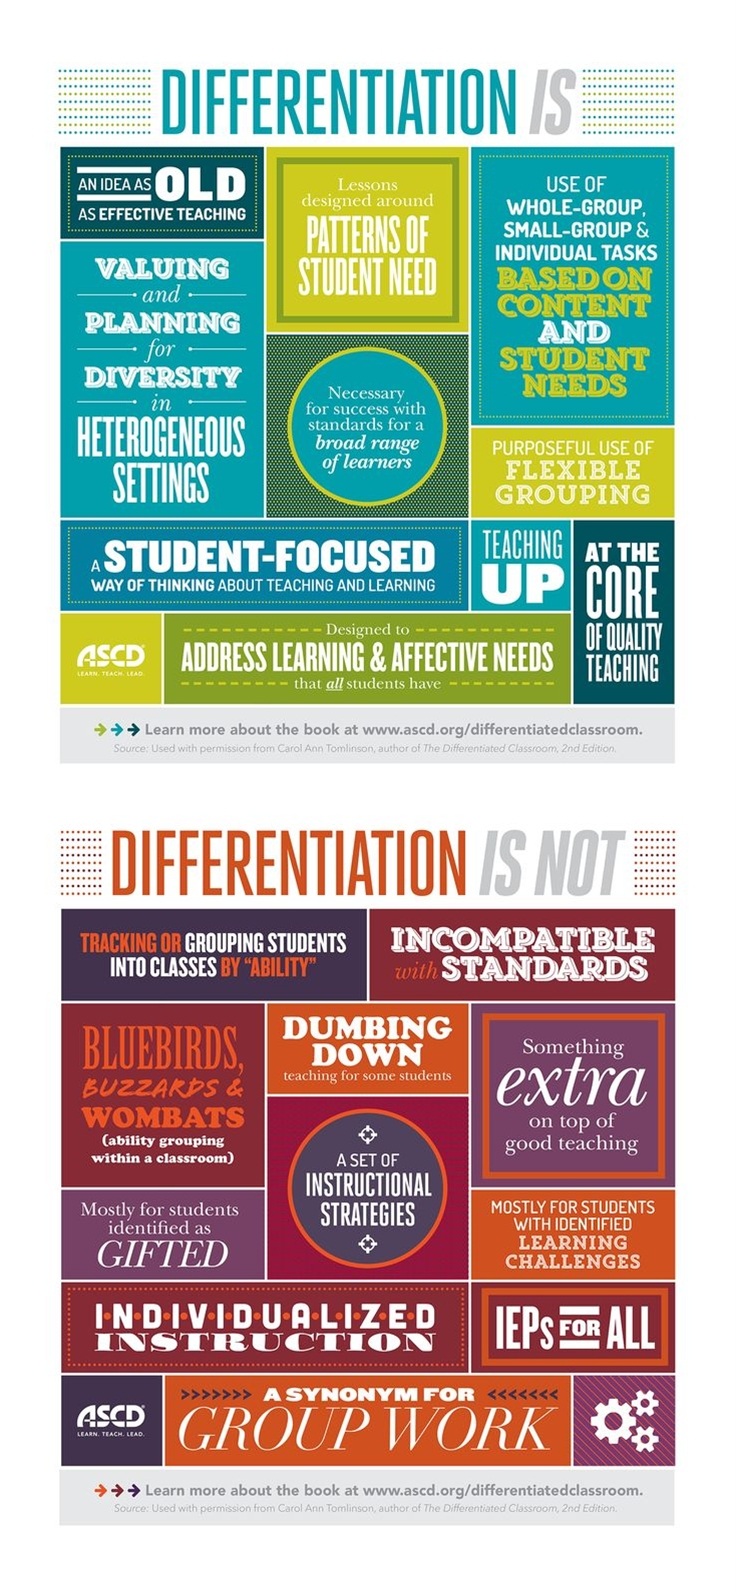 Take a look at the infographic below that highlights some of the best and worst practices for differentiation in today's classrooms.